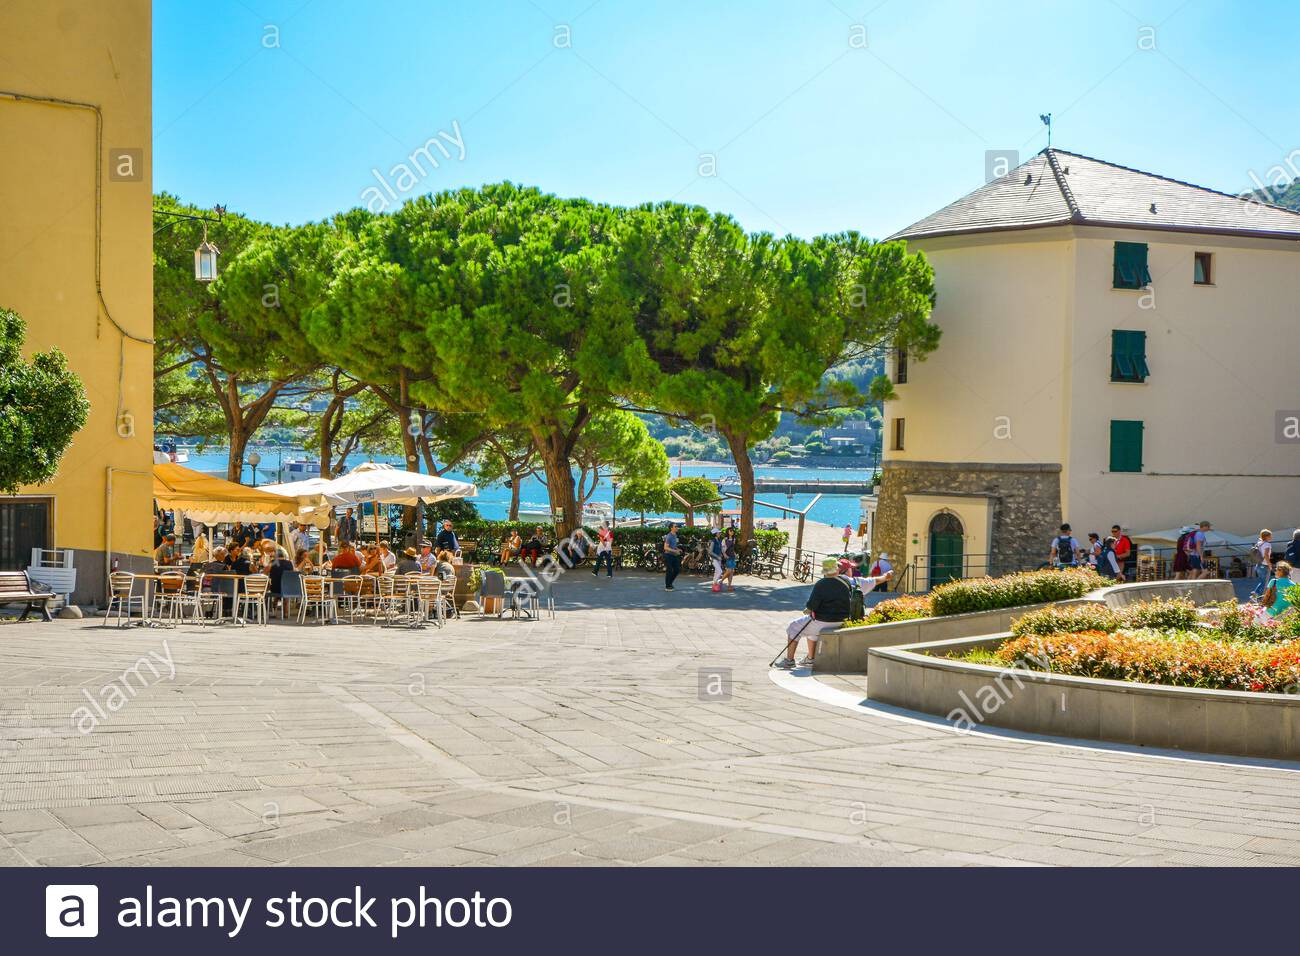 A sunny day on the Ligurian Coast as tourists enjoy cafes and relaxation on the  Piazza Bastreri in the coastal village of Portovenere, Italy Stock Photo